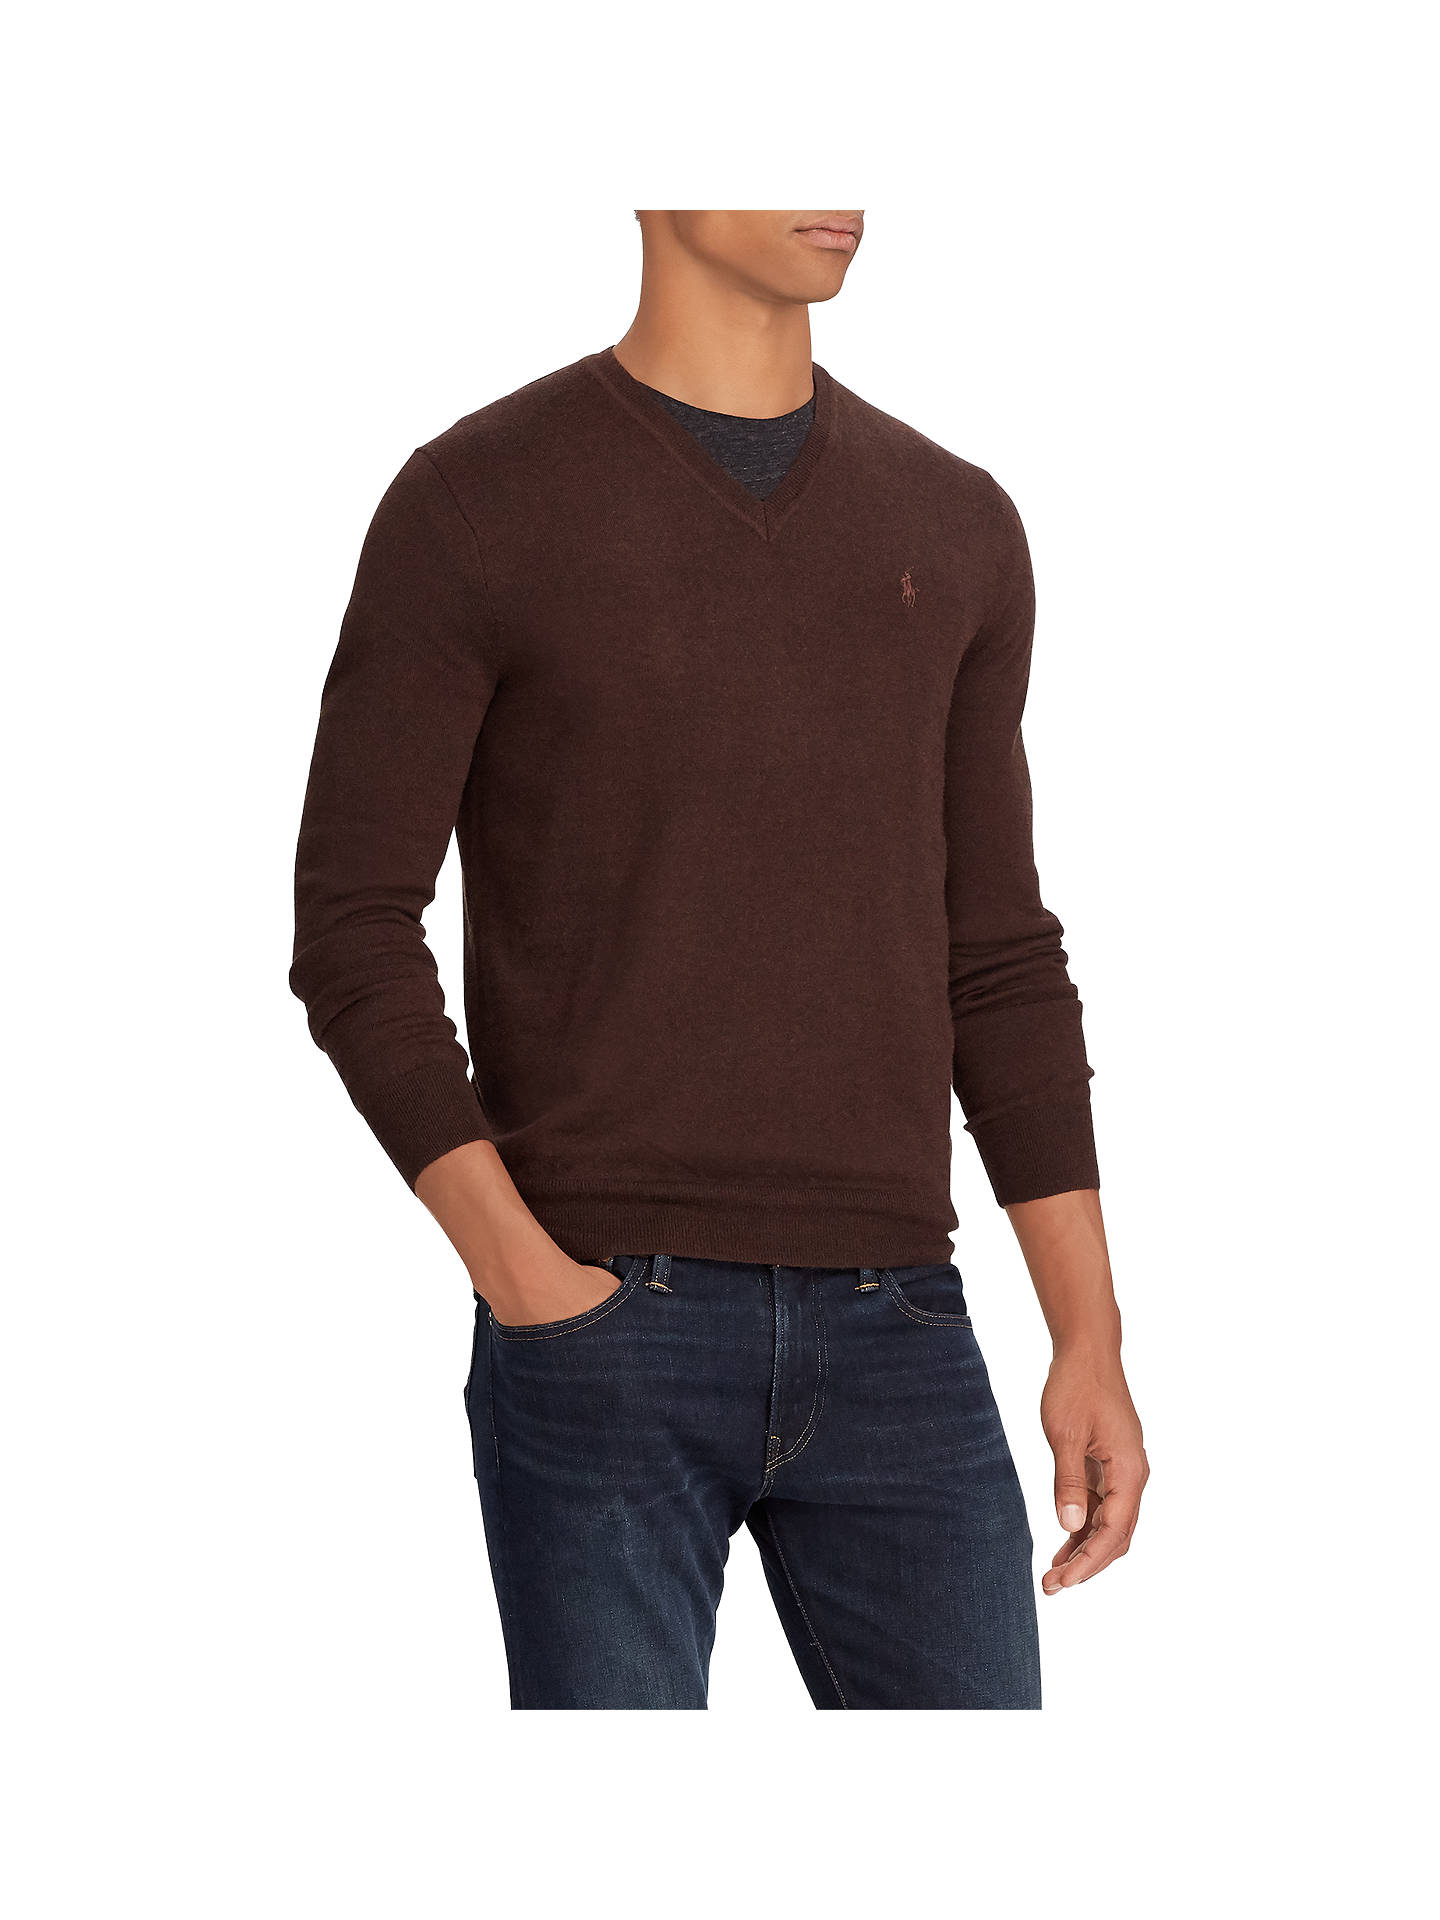 BuyPolo Ralph Lauren Wool V-Neck Jumper, Choc Brown Heather, XL Online at johnlewis.com